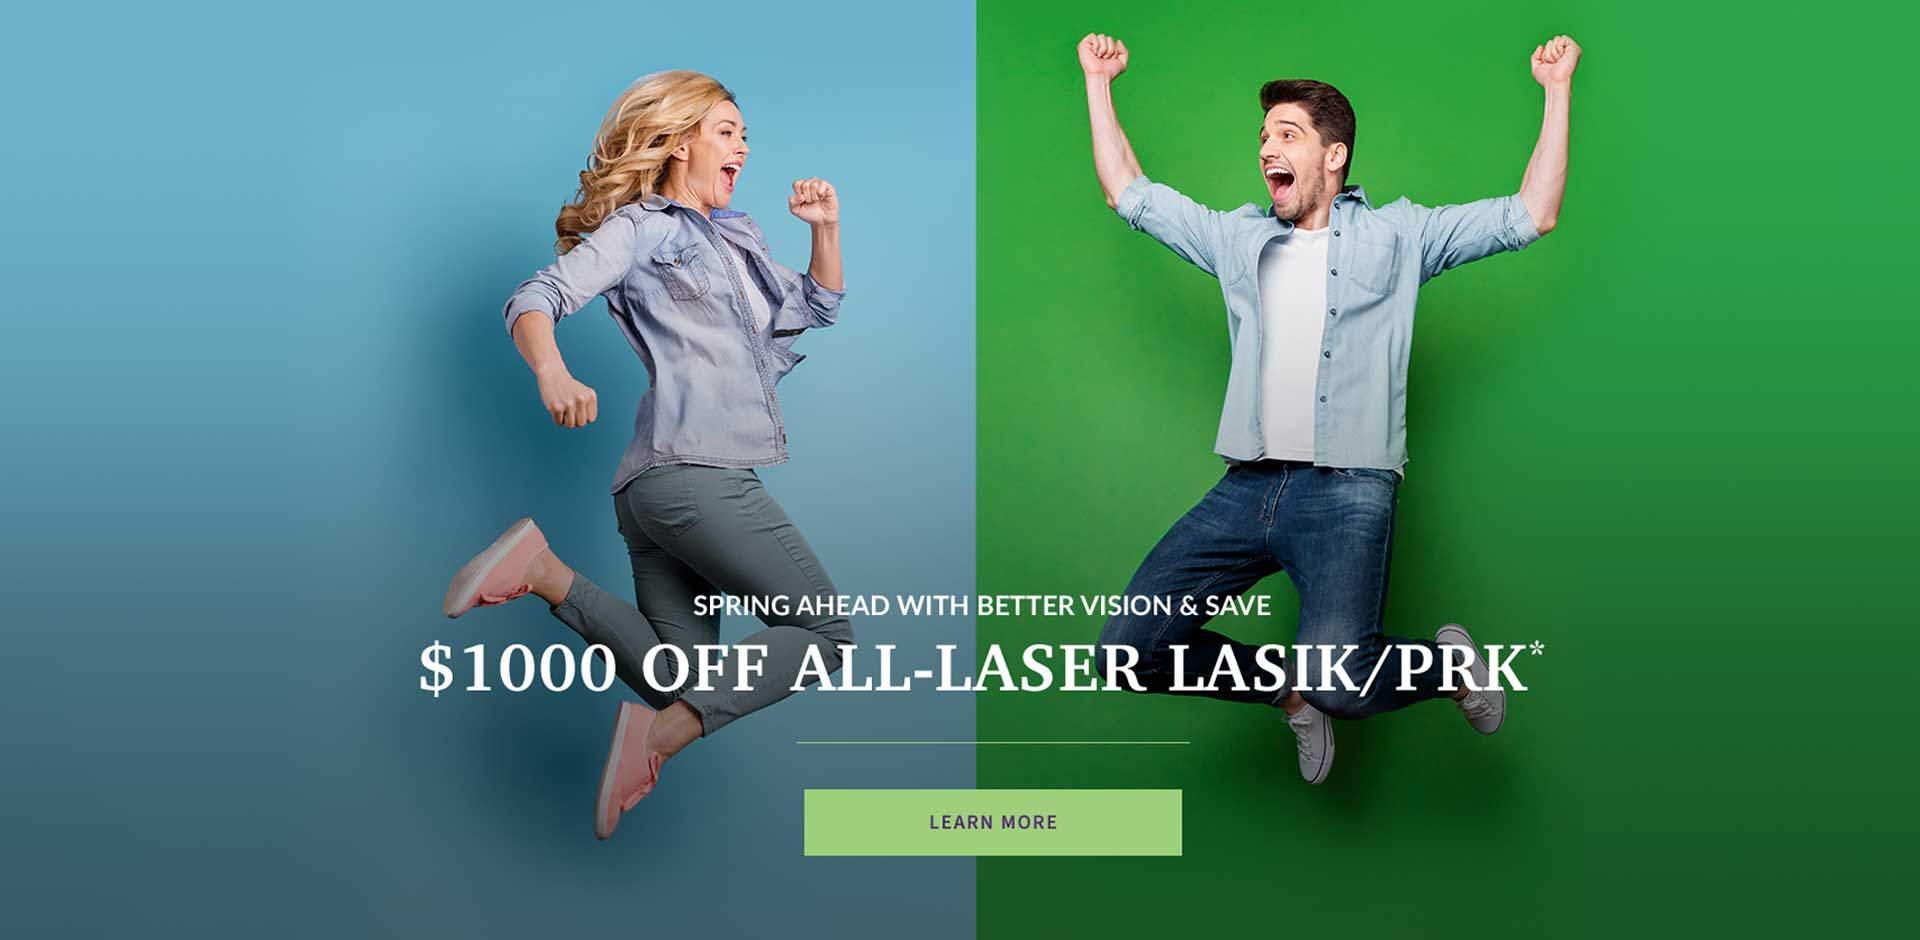 Spring Ahead with better vision and save. $1000 Off All-Laser LASIK/PRK*